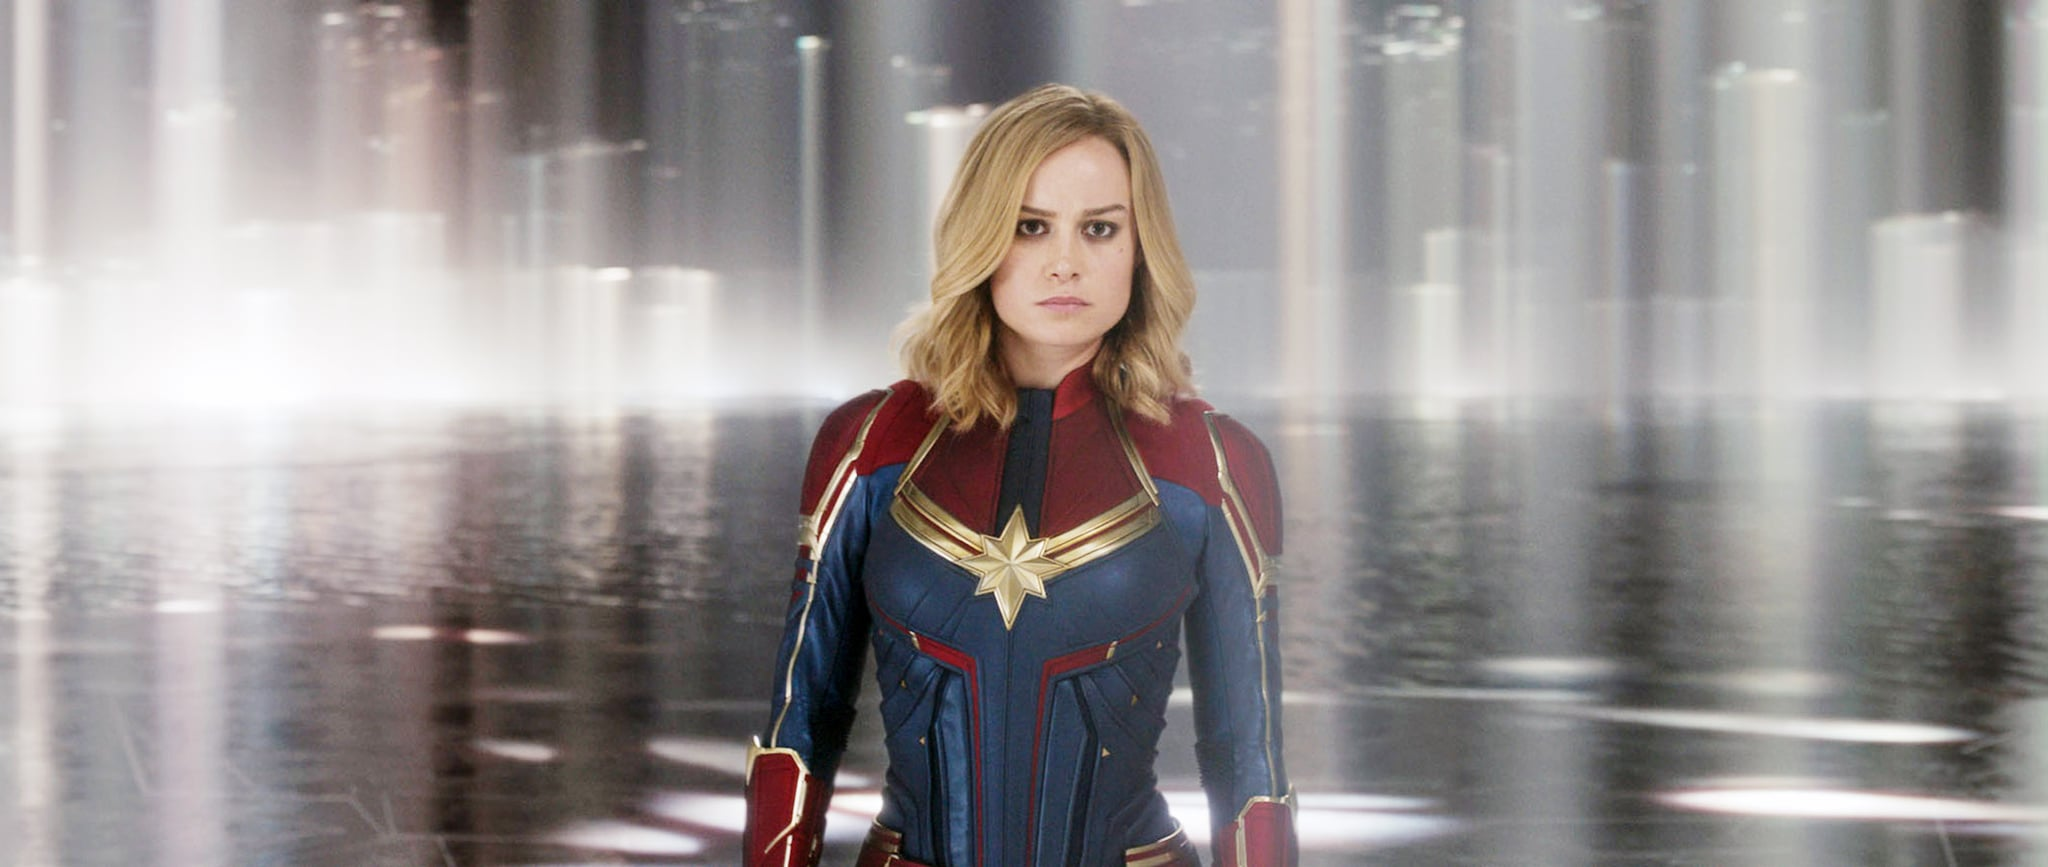 CAPTAIN MARVEL, Brie Larson as Carol Danvers / Captain Marvel, 2019.  Walt Disney Studios Motion Pictures /  Marvel / courtesy Everett Collection